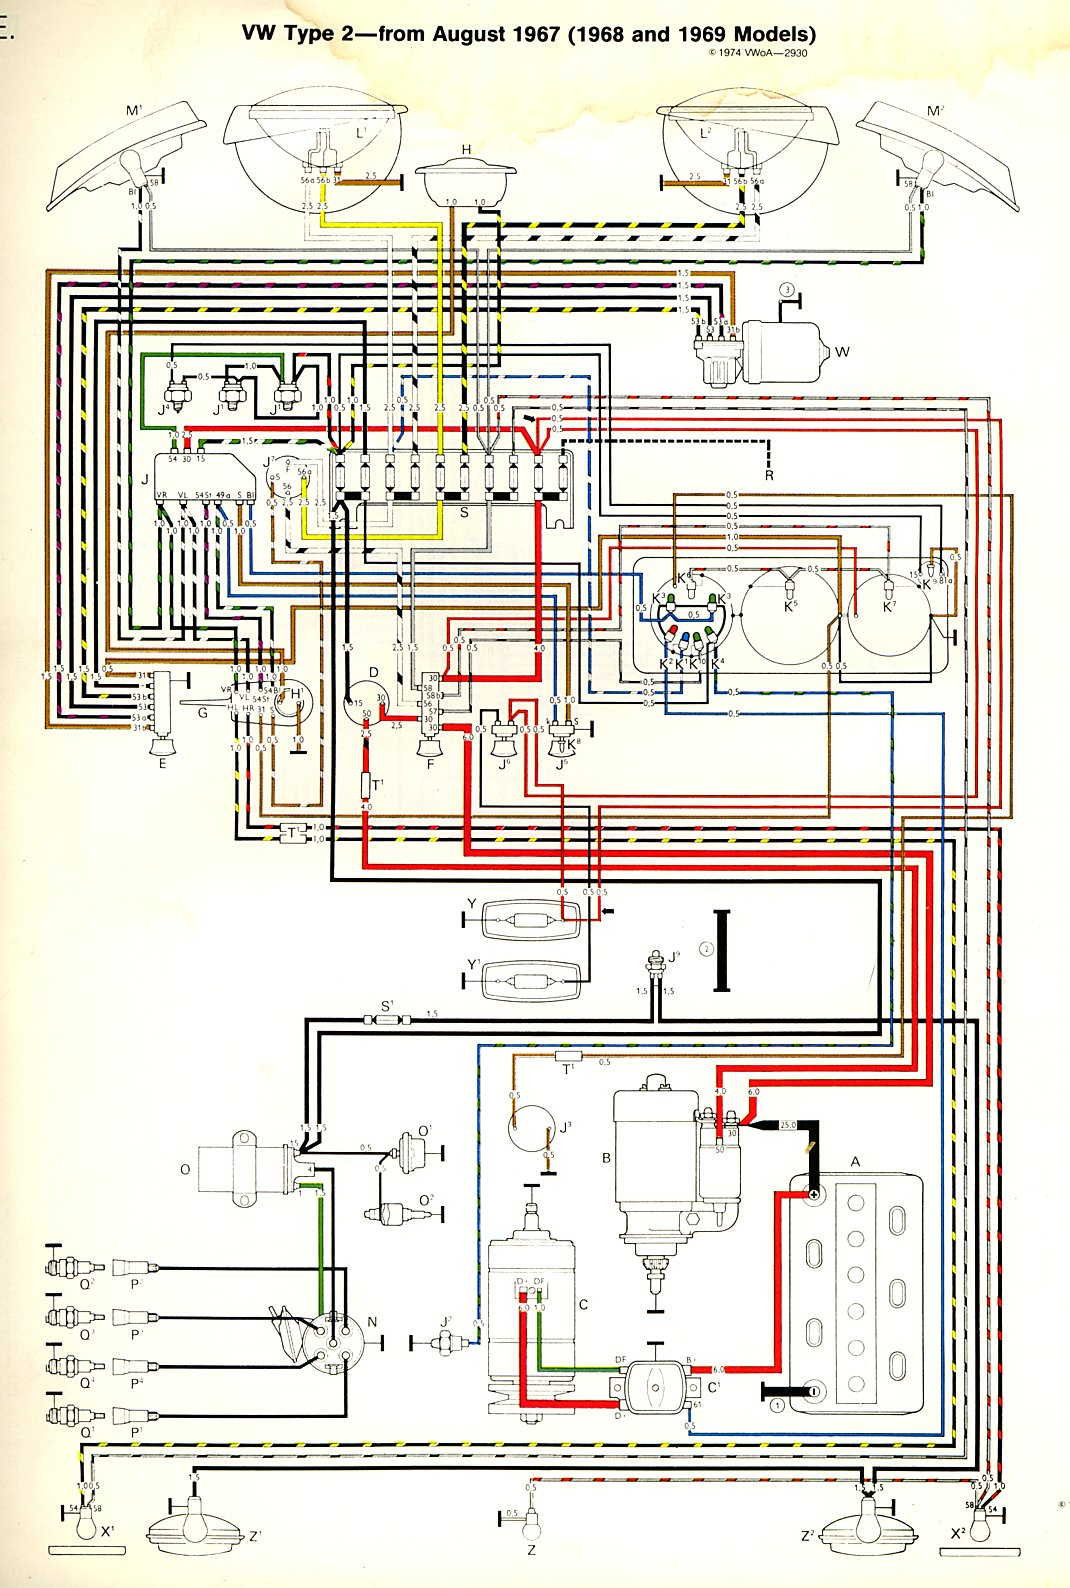 baybus_6869a 1968 69 bus wiring diagram thegoldenbug com Volkswagen Type 2 Wiring Harness at gsmx.co